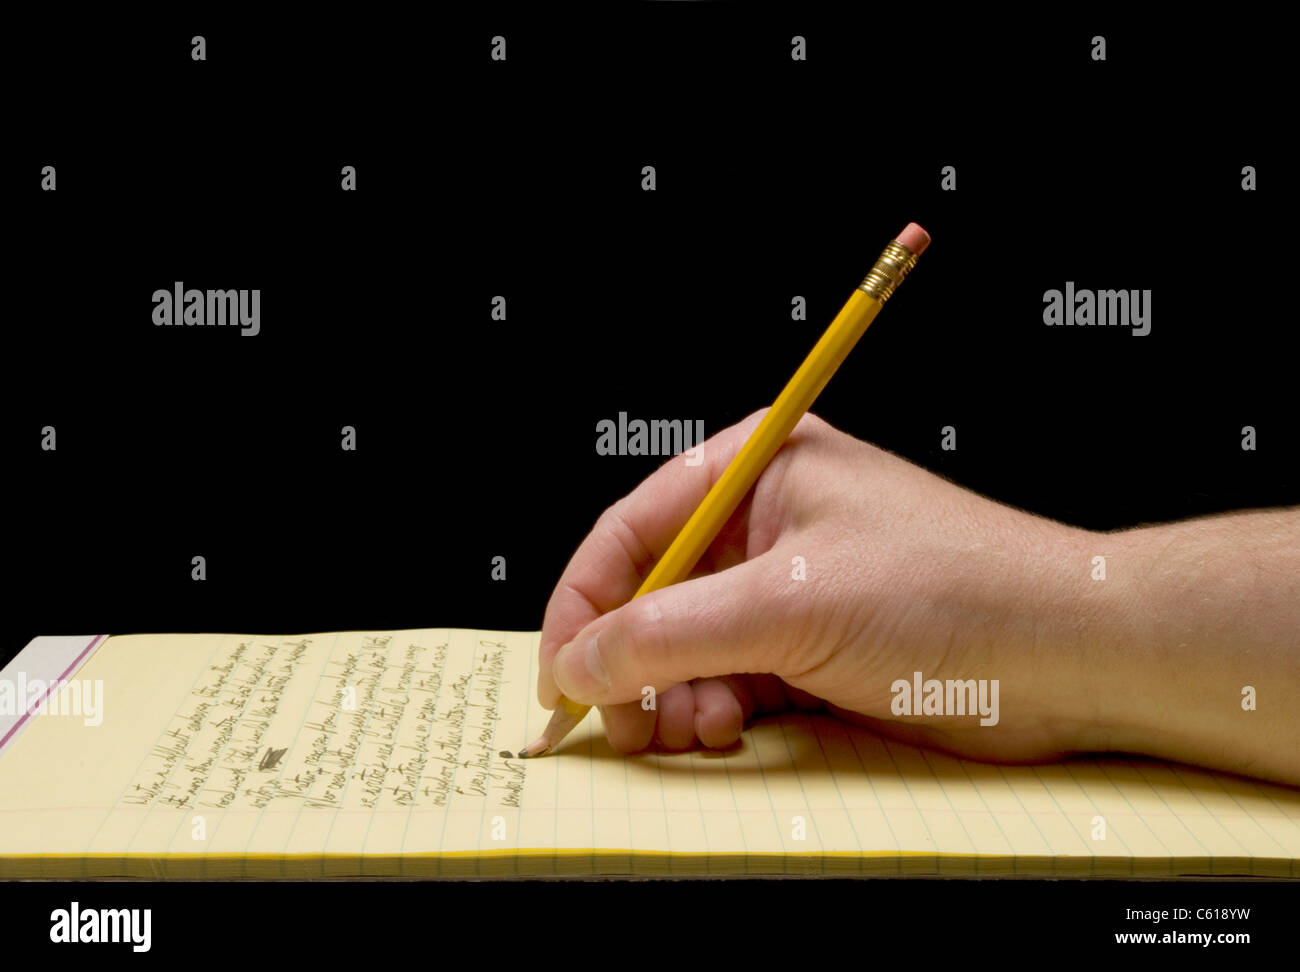 Handwriting with broken pencil point on yellow legal pad - Stock Image